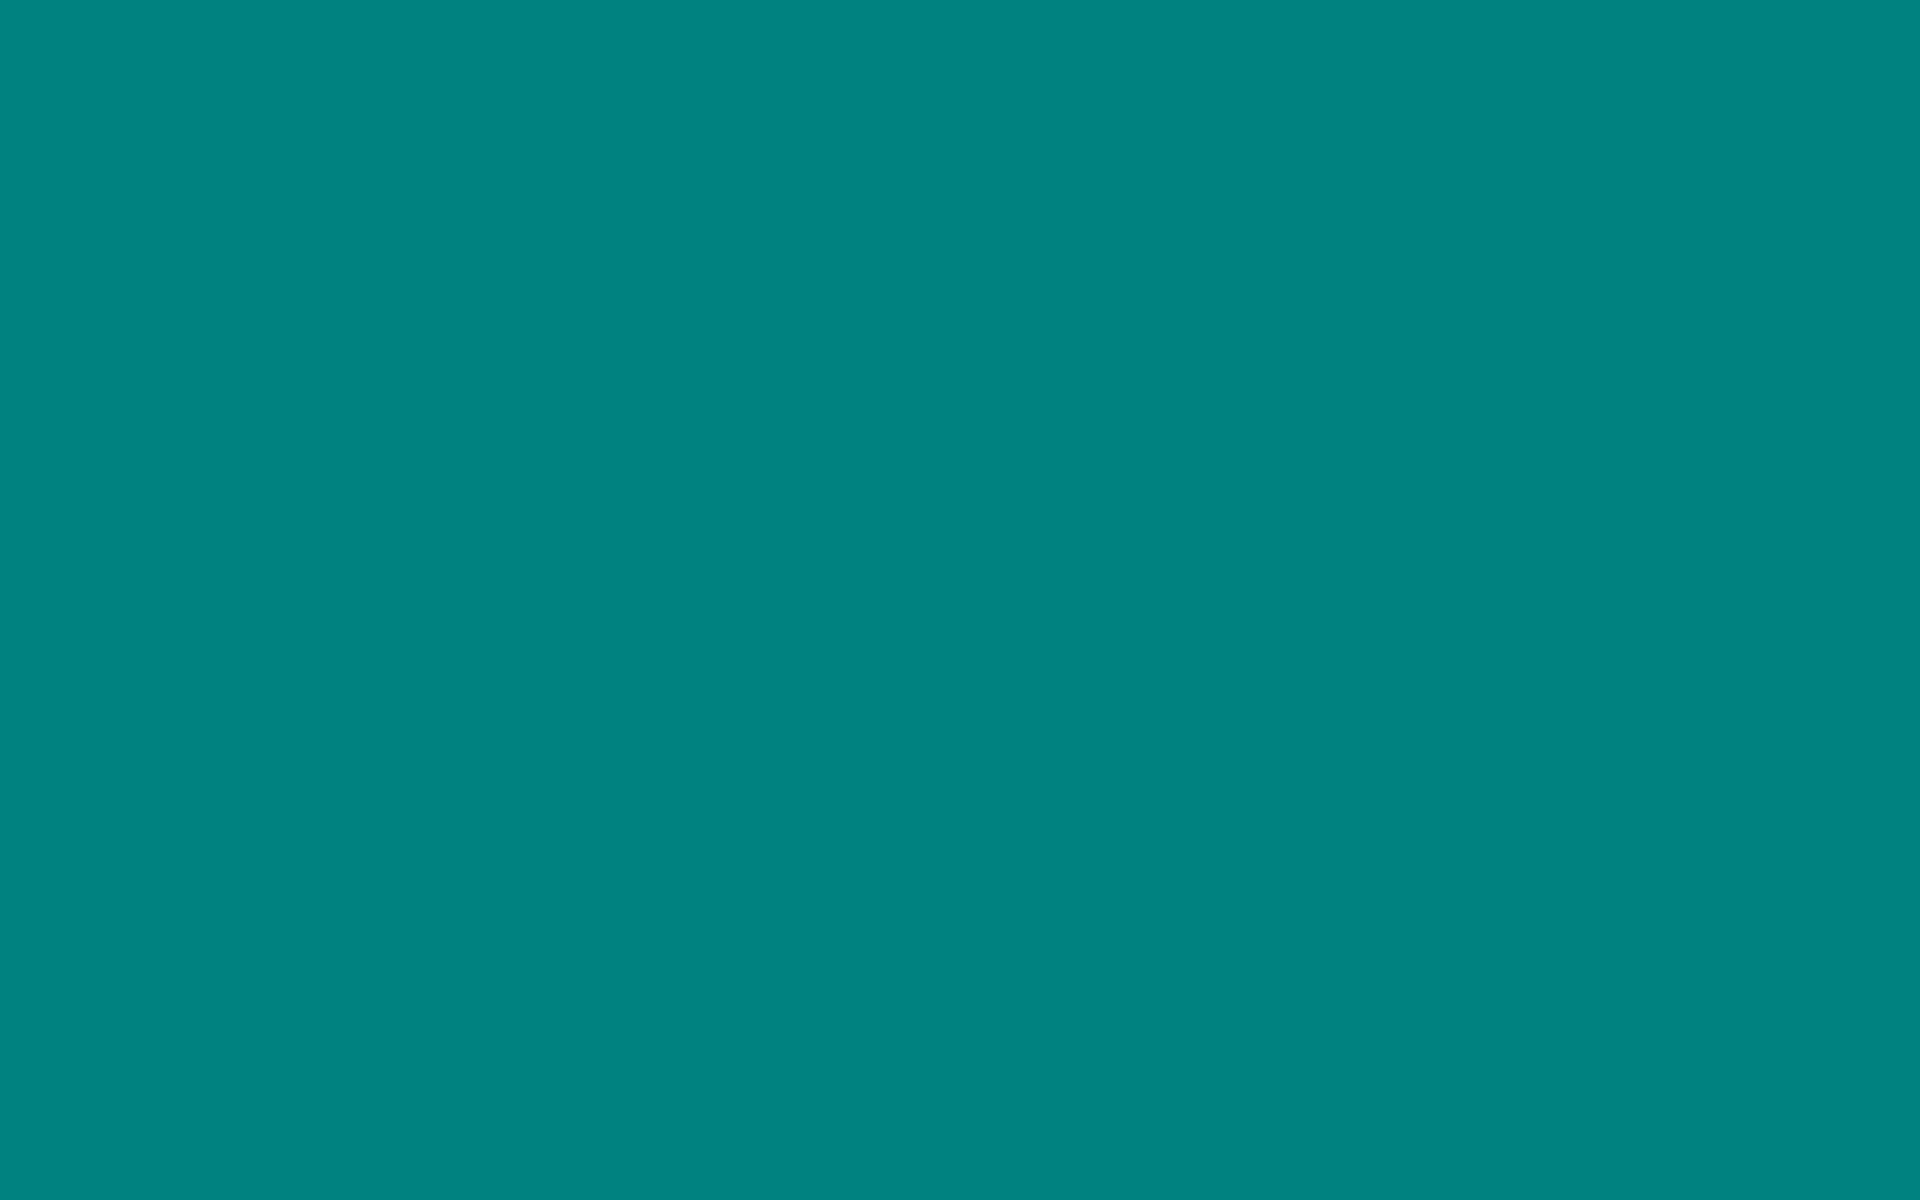 Teal color wallpaper high definition high quality for Teal wallpaper